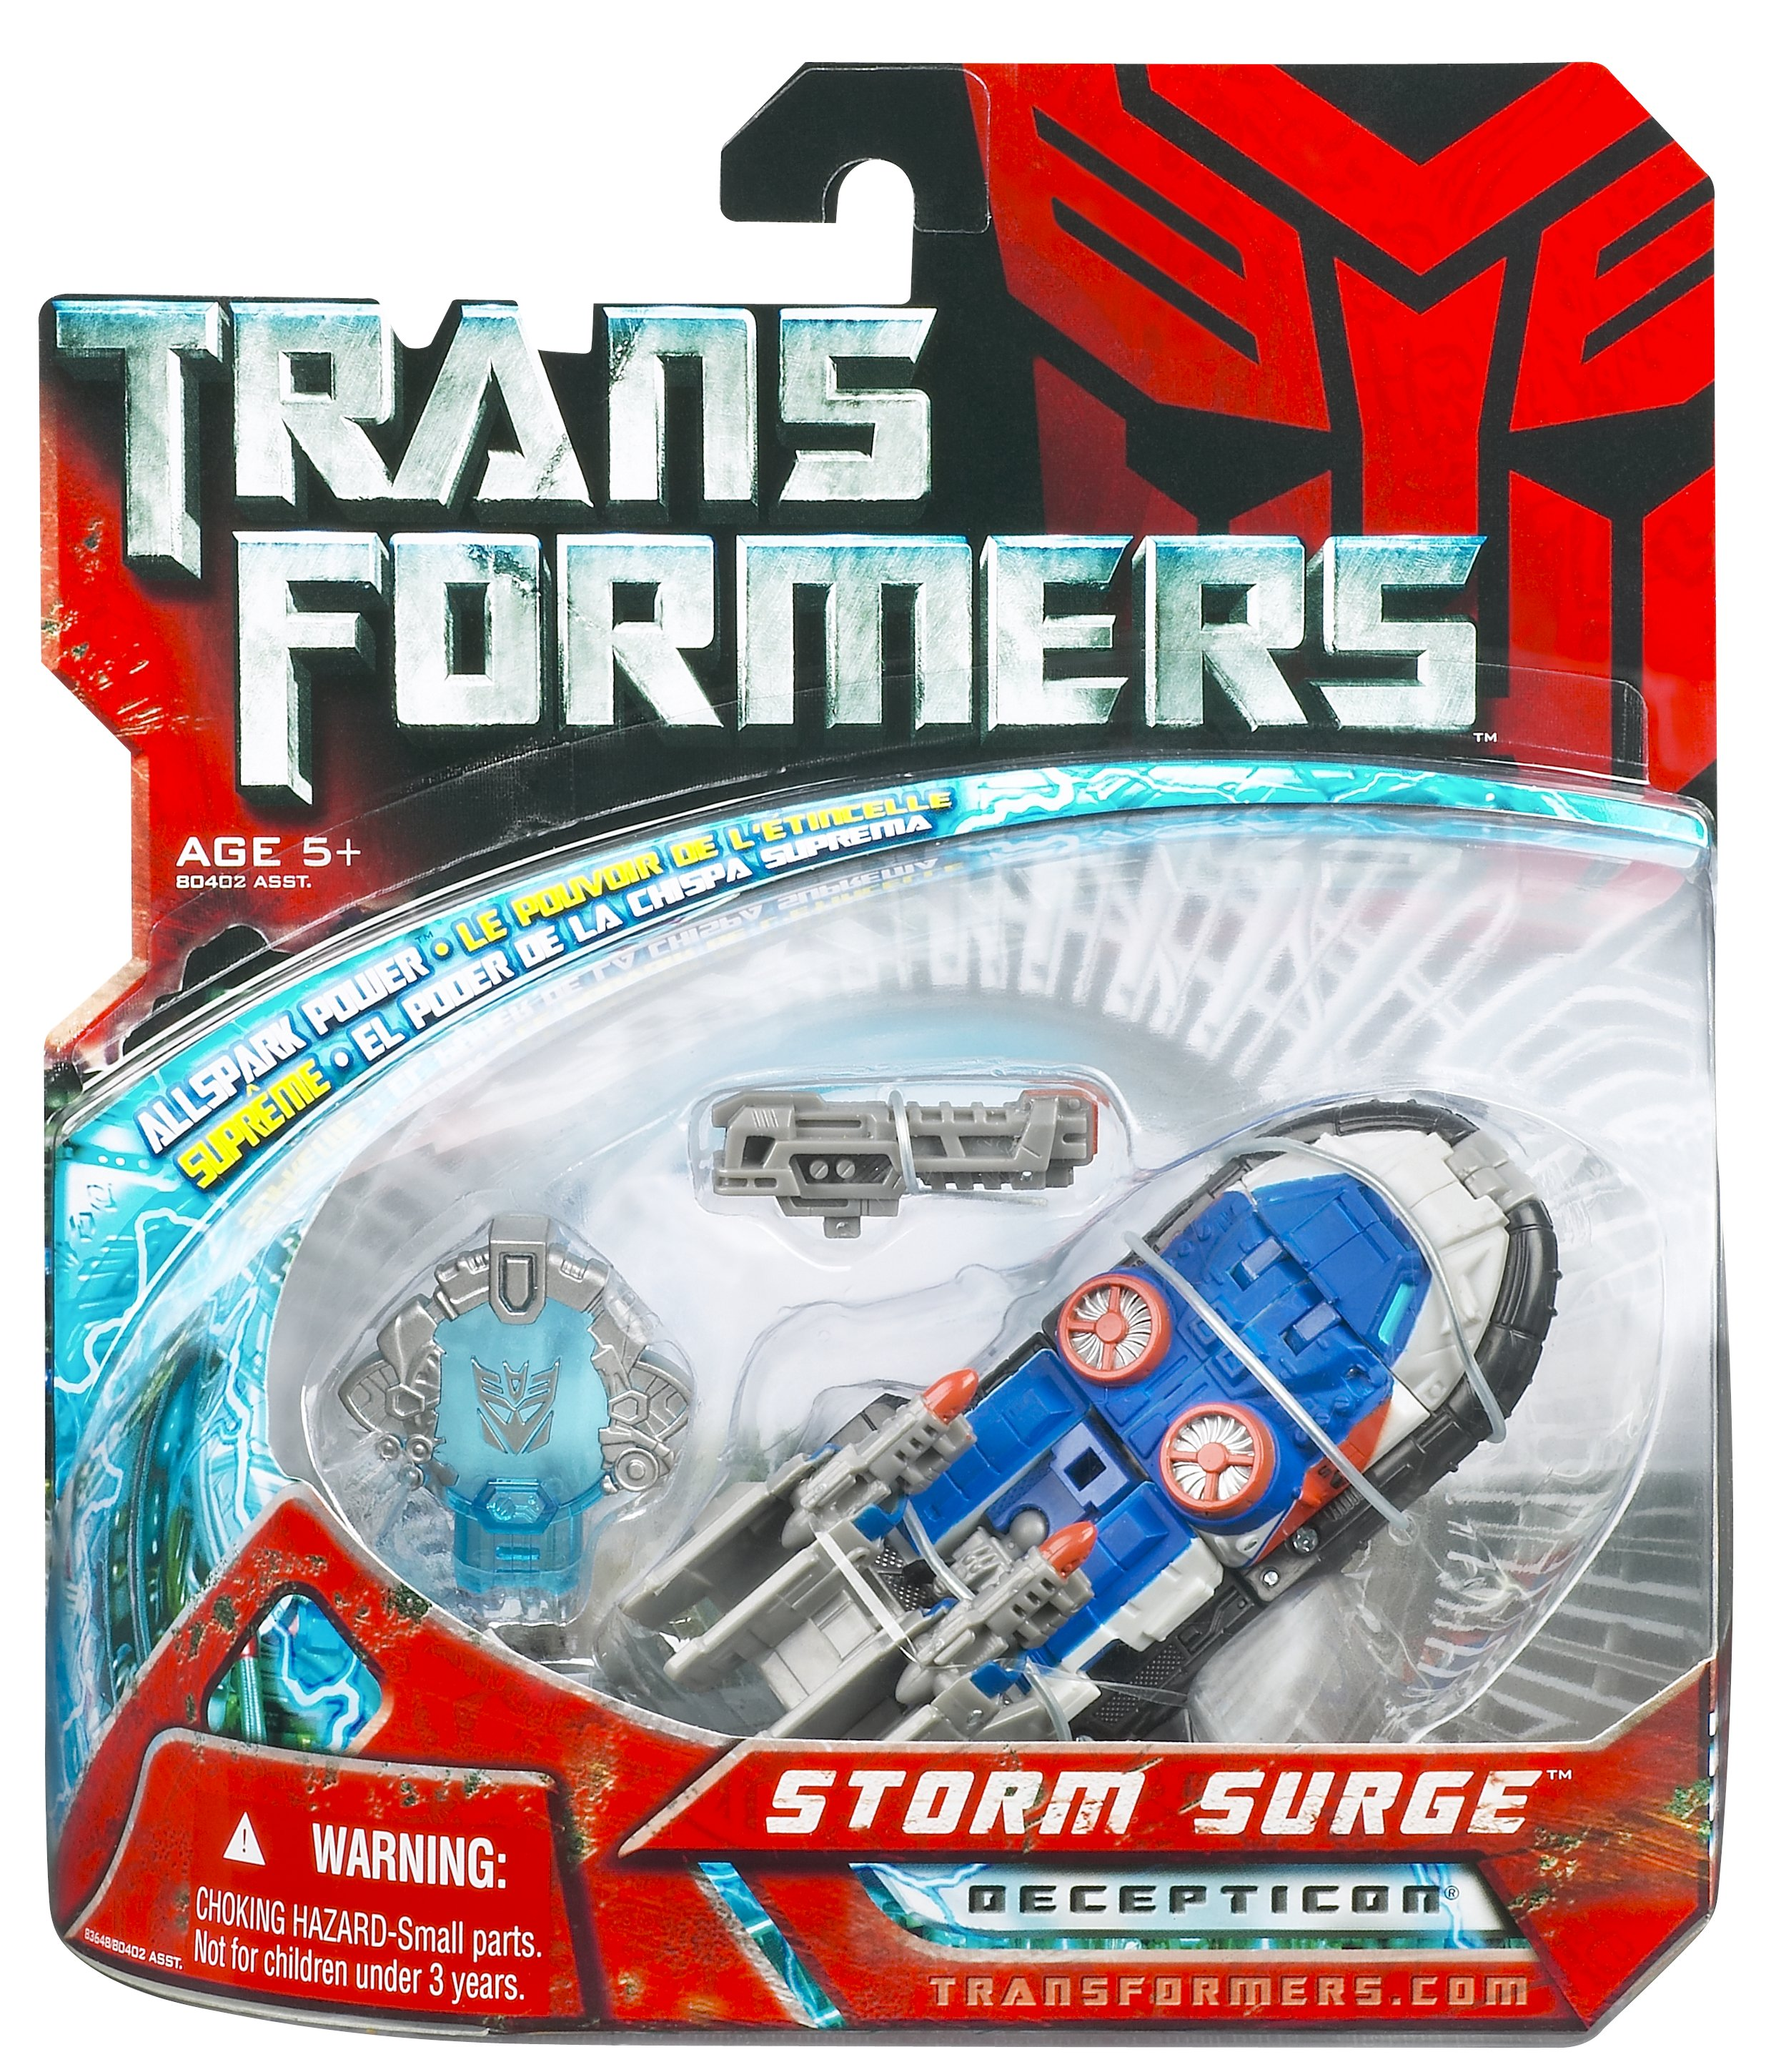 Allspark Power Warpath, Storm Surge and Crosshairs Pictures/Bios-836480920_653569293453_pkg_07.jpeg